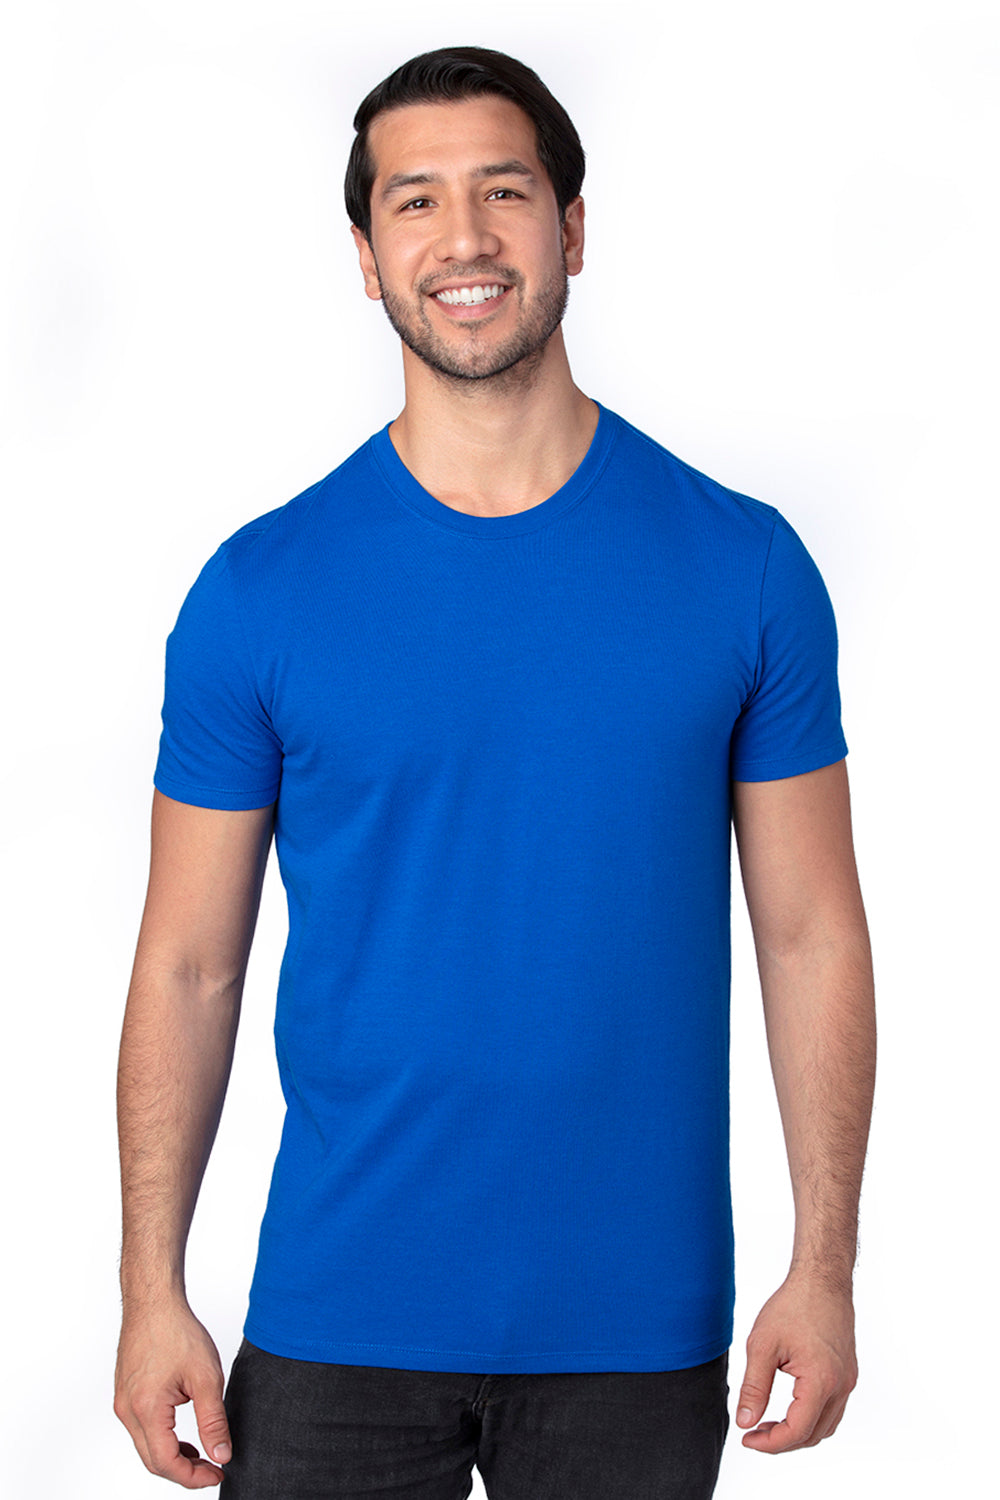 Threadfast Apparel 100A Mens Ultimate Short Sleeve Crewneck T-Shirt Royal Blue Front